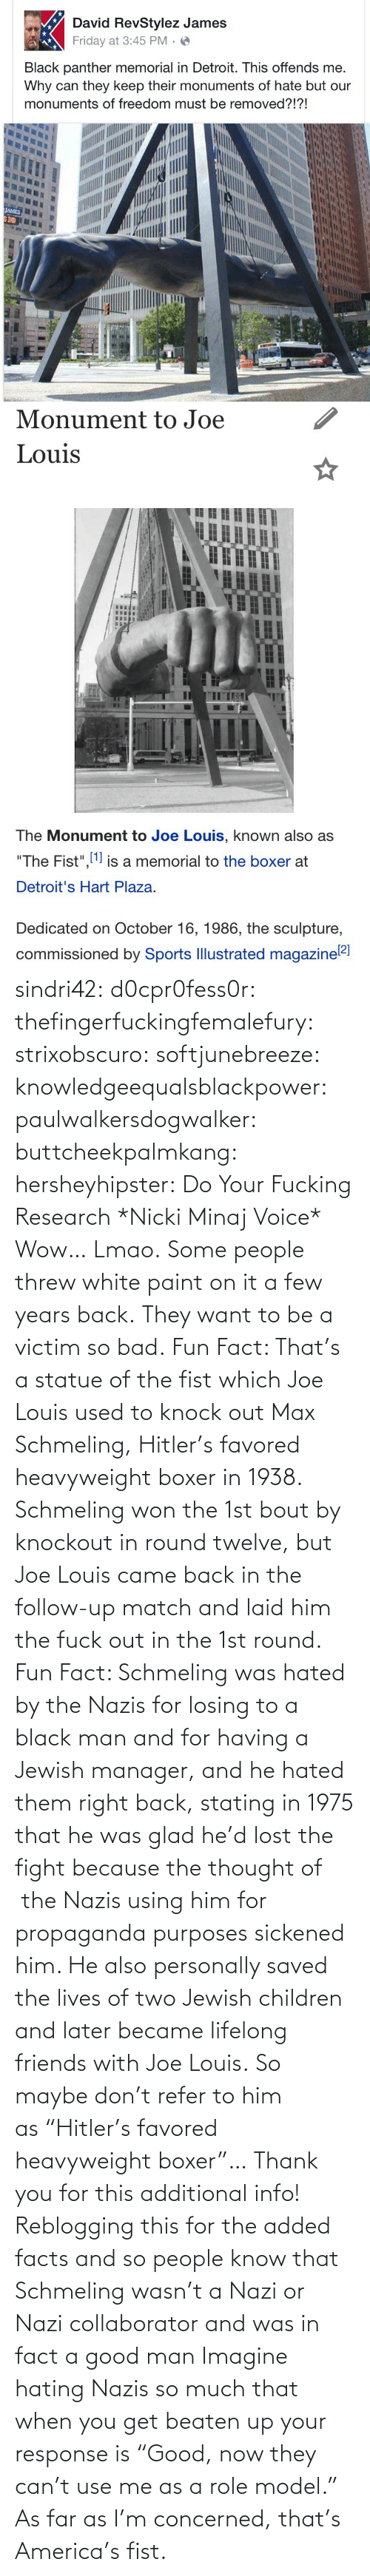 "Personally: sindri42:  d0cpr0fess0r:  thefingerfuckingfemalefury:  strixobscuro:  softjunebreeze:  knowledgeequalsblackpower:  paulwalkersdogwalker:   buttcheekpalmkang:   hersheyhipster:  Do Your Fucking Research *Nicki Minaj Voice*    Wow… Lmao.   Some people threw white paint on it a few years back.   They want to be a victim so bad.  Fun Fact: That's a statue of the fist which Joe Louis used to knock out Max Schmeling, Hitler's favored heavyweight boxer in 1938. Schmeling won the 1st bout by knockout in round twelve, but Joe Louis came back in the follow-up match and laid him the fuck out in the 1st round.  Fun Fact: Schmeling was hated by the Nazis for losing to a black man and for having a Jewish manager, and he hated them right back, stating in 1975 that he was glad he'd lost the fight because the thought of  the Nazis using him for propaganda purposes sickened him. He also personally saved the lives of two Jewish children and later became lifelong friends with Joe Louis. So maybe don't refer to him as ""Hitler's favored heavyweight boxer""…  Thank you for this additional info! Reblogging this for the added facts and so people know that Schmeling wasn't a Nazi or Nazi collaborator and was in fact a good man   Imagine hating Nazis so much that when you get beaten up your response is ""Good, now they can't use me as a role model.""  As far as I'm concerned, that's America's fist."